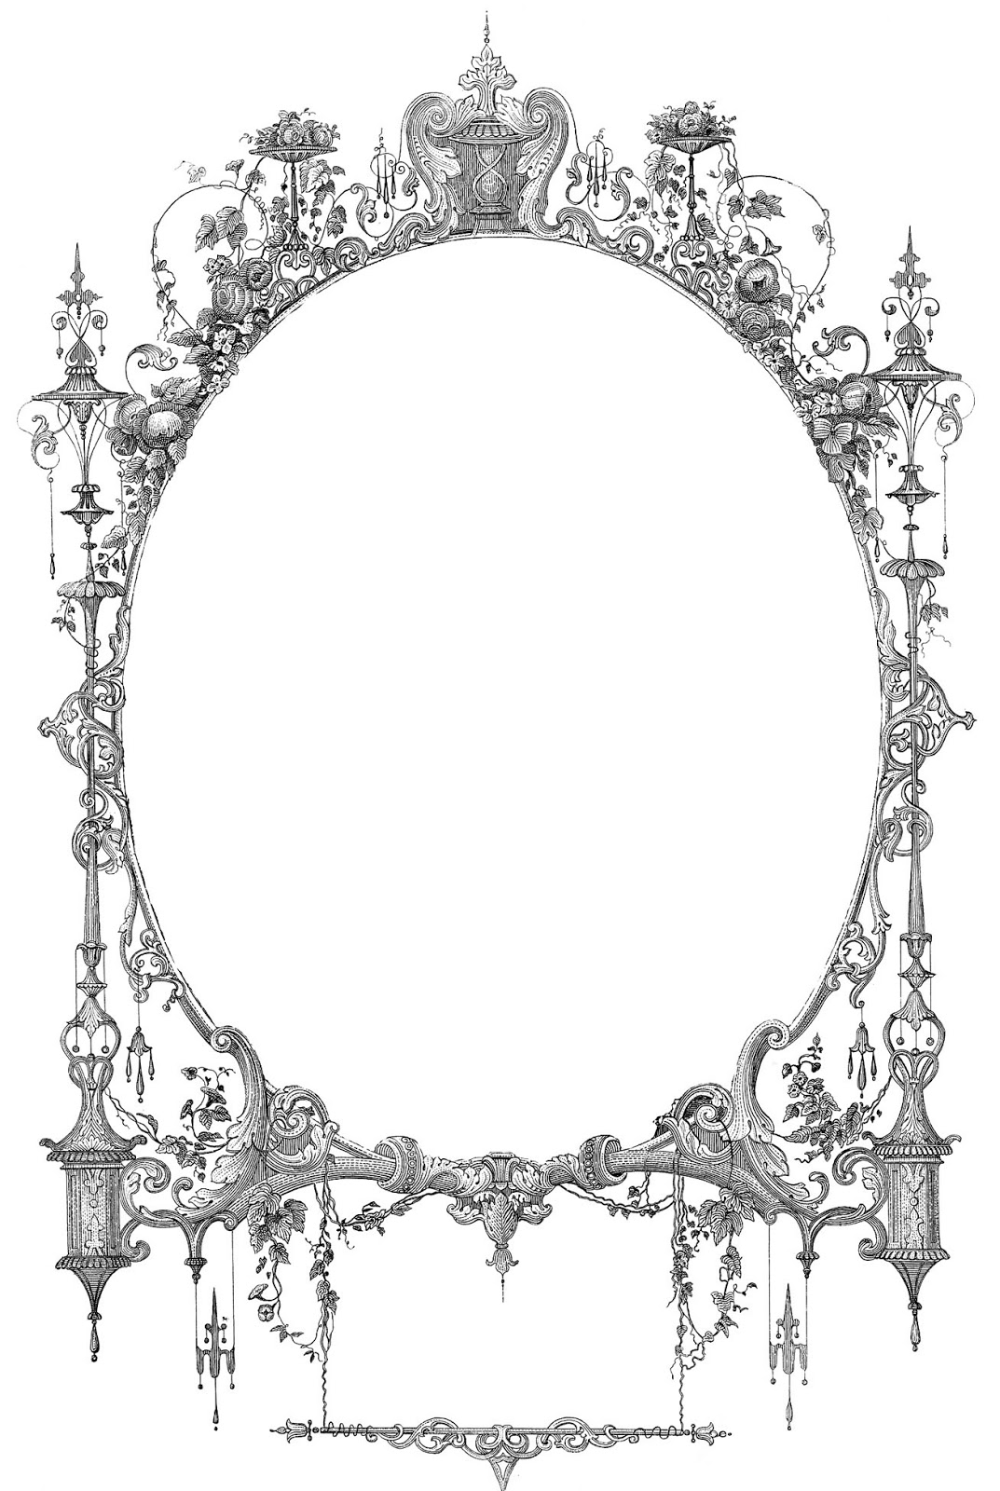 Halloween Vintage Frames Png Free Halloween Frame Cliparts Download Free Clip Art Free Clip In 2020 Clip Art Vintage Vintage Borders Halloween Frames